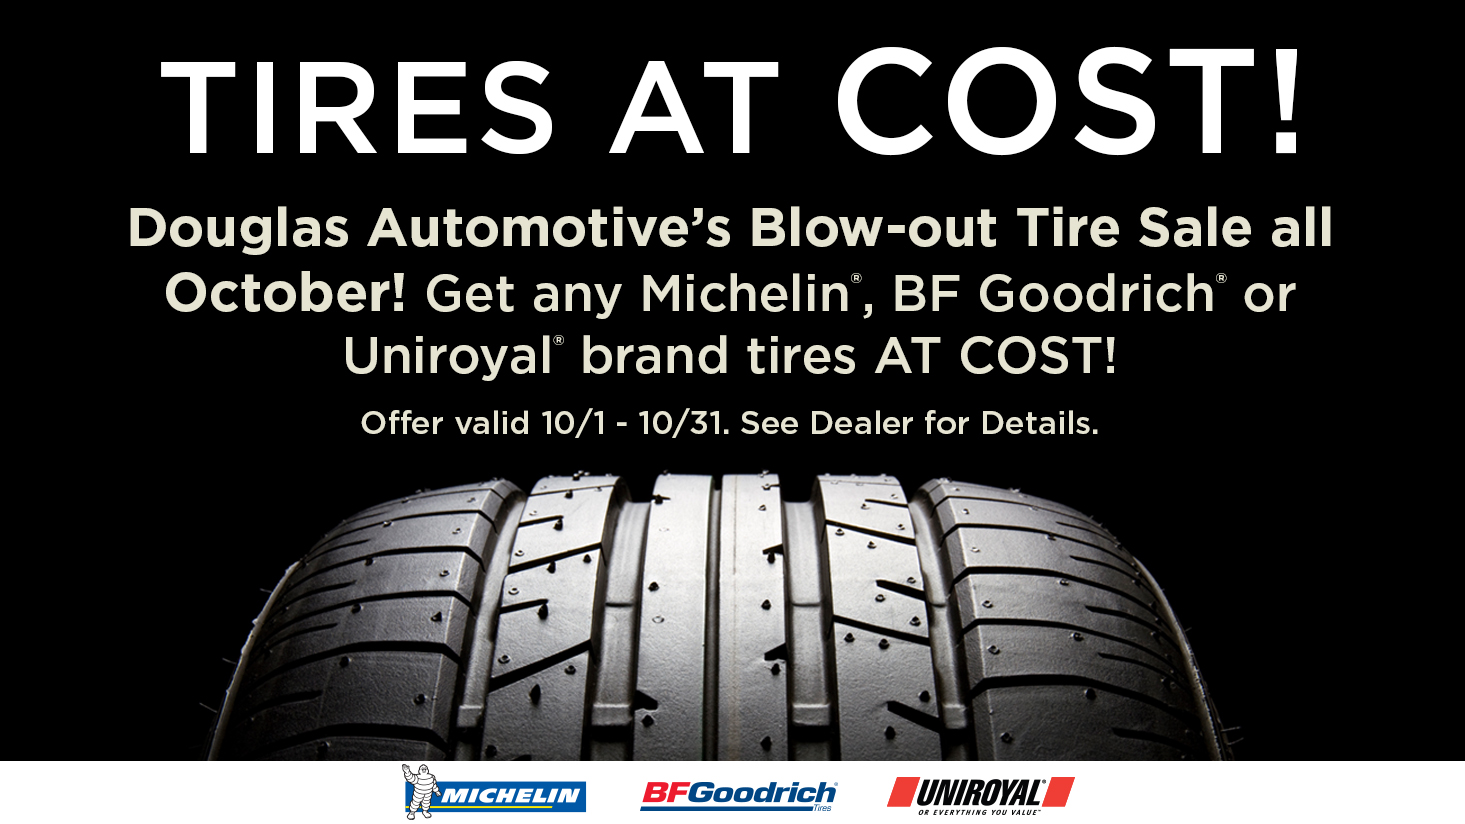 Tires At Cost | Douglas Automotive